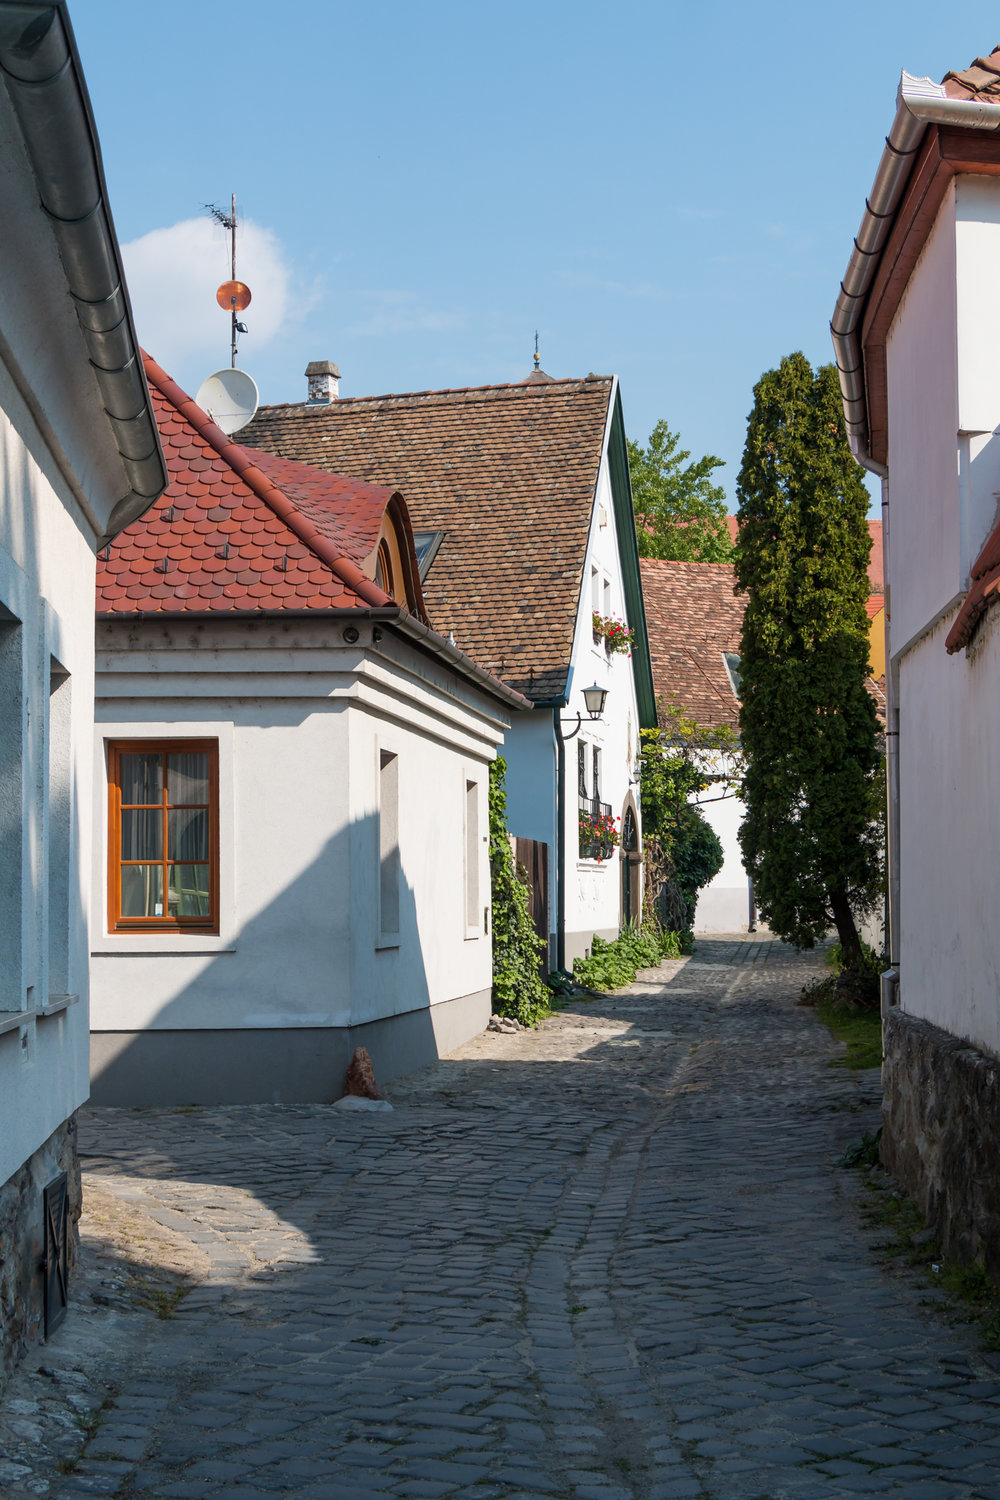 Four Days In Budapest, Hungary: A Day Trip To Szentendre | Sea of Atlas